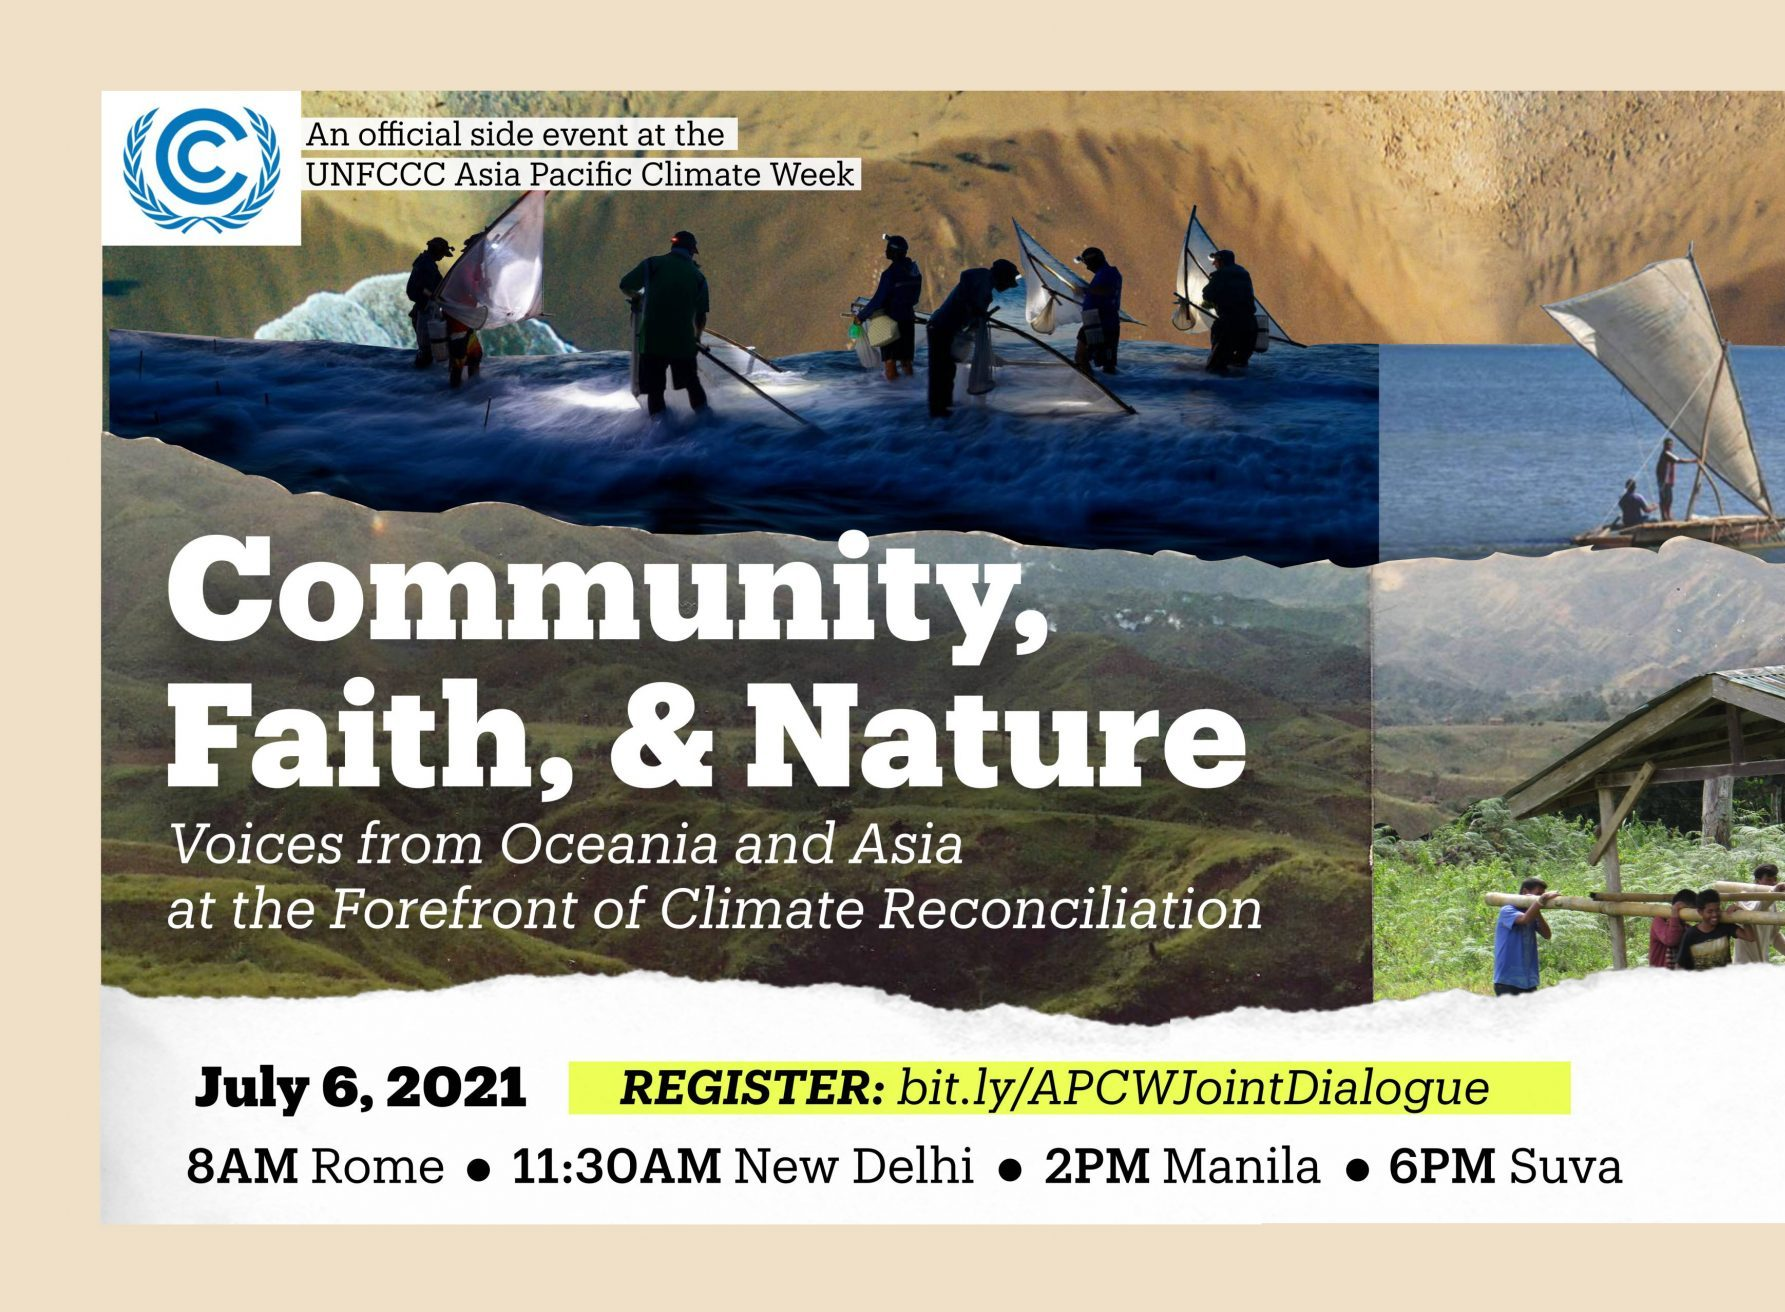 Community, Faith, and Nature: Voices from Oceania and Asia at the Forefront of Climate Reconciliation